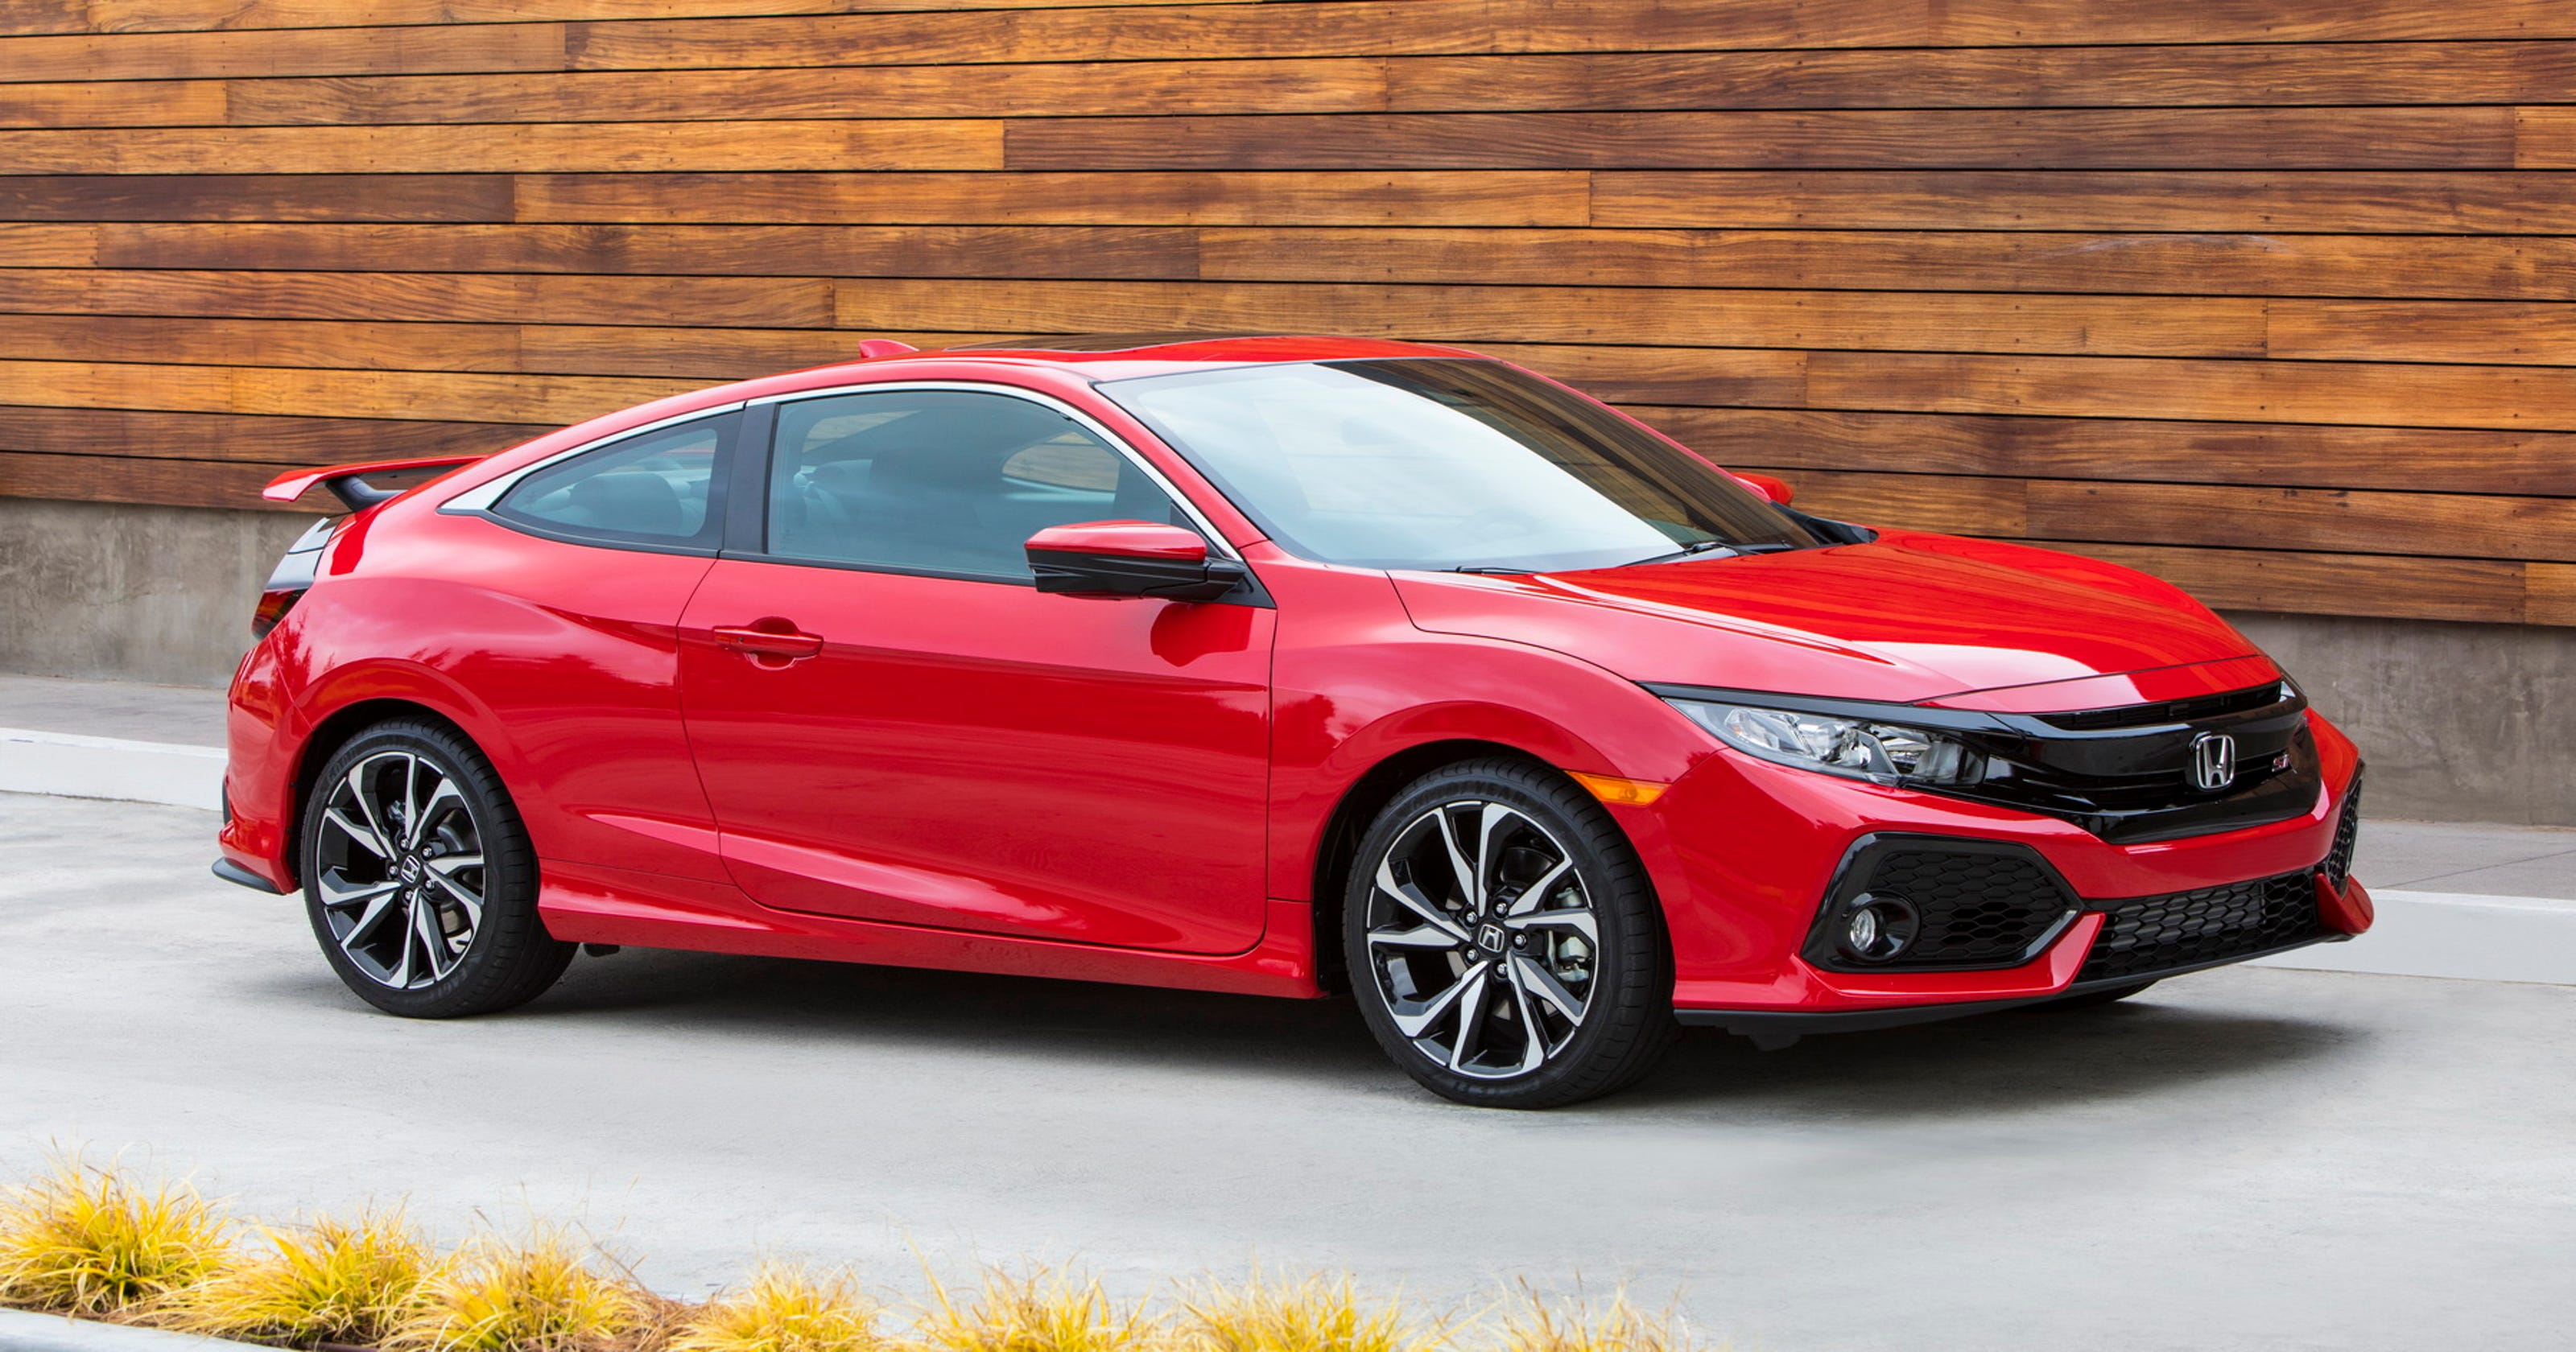 2017 Honda Civic Si Coupe Is Enthusiast Oriented